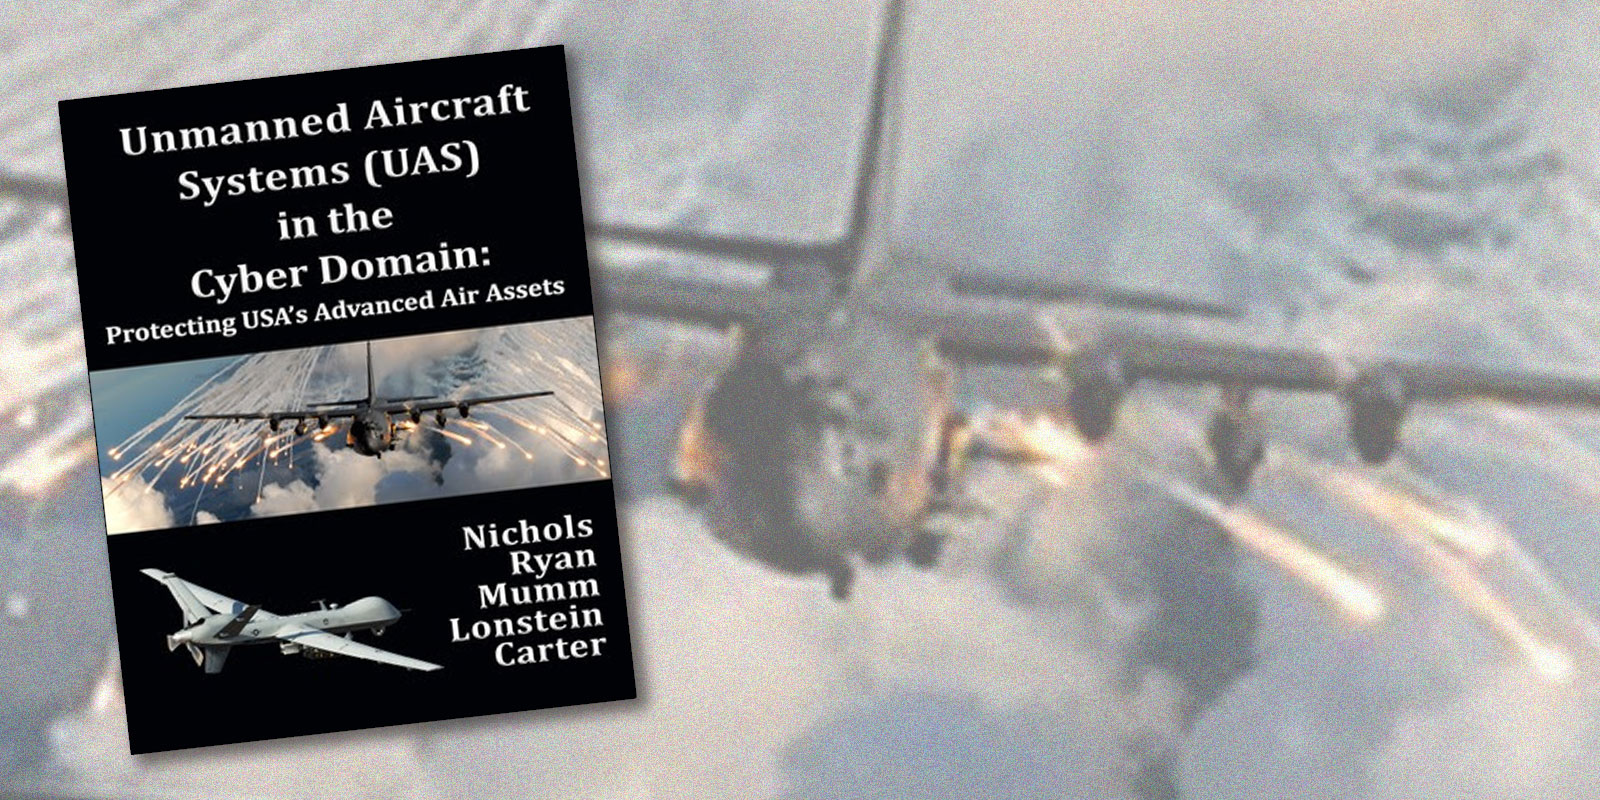 "New Book Releases #1 on Amazon ""Unmanned Aircraft Systems (UAS) in the Cyber Domain: Protecting USA's Advanced Air Assets"""